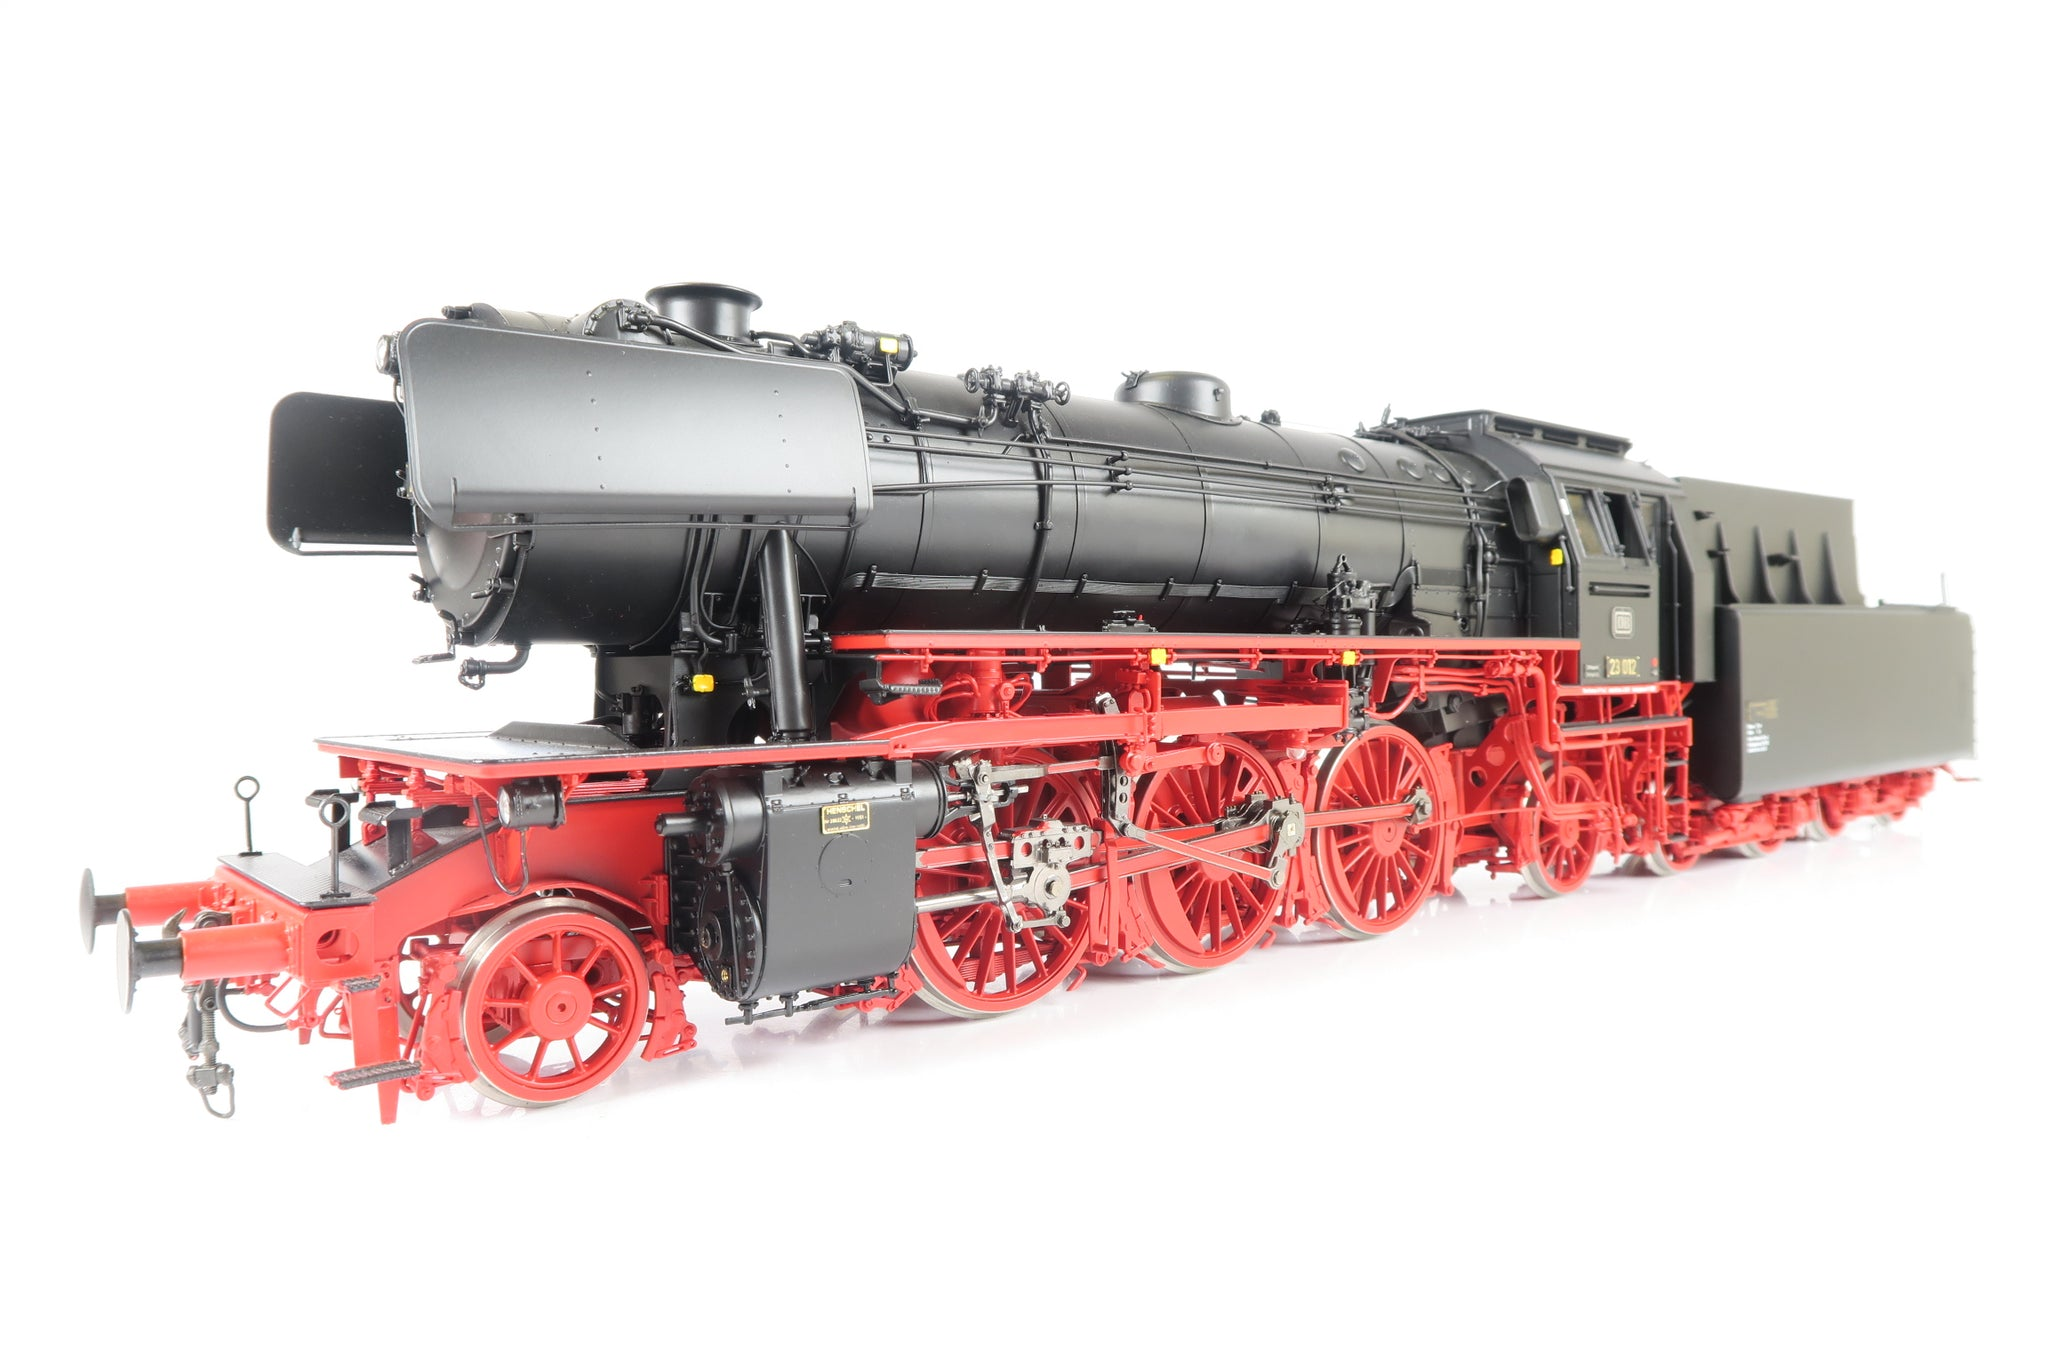 KM1 Gauge 1 102303 BR 23 012, DB EpIIIb, NEM Steam Locomotive with DCC Sound!